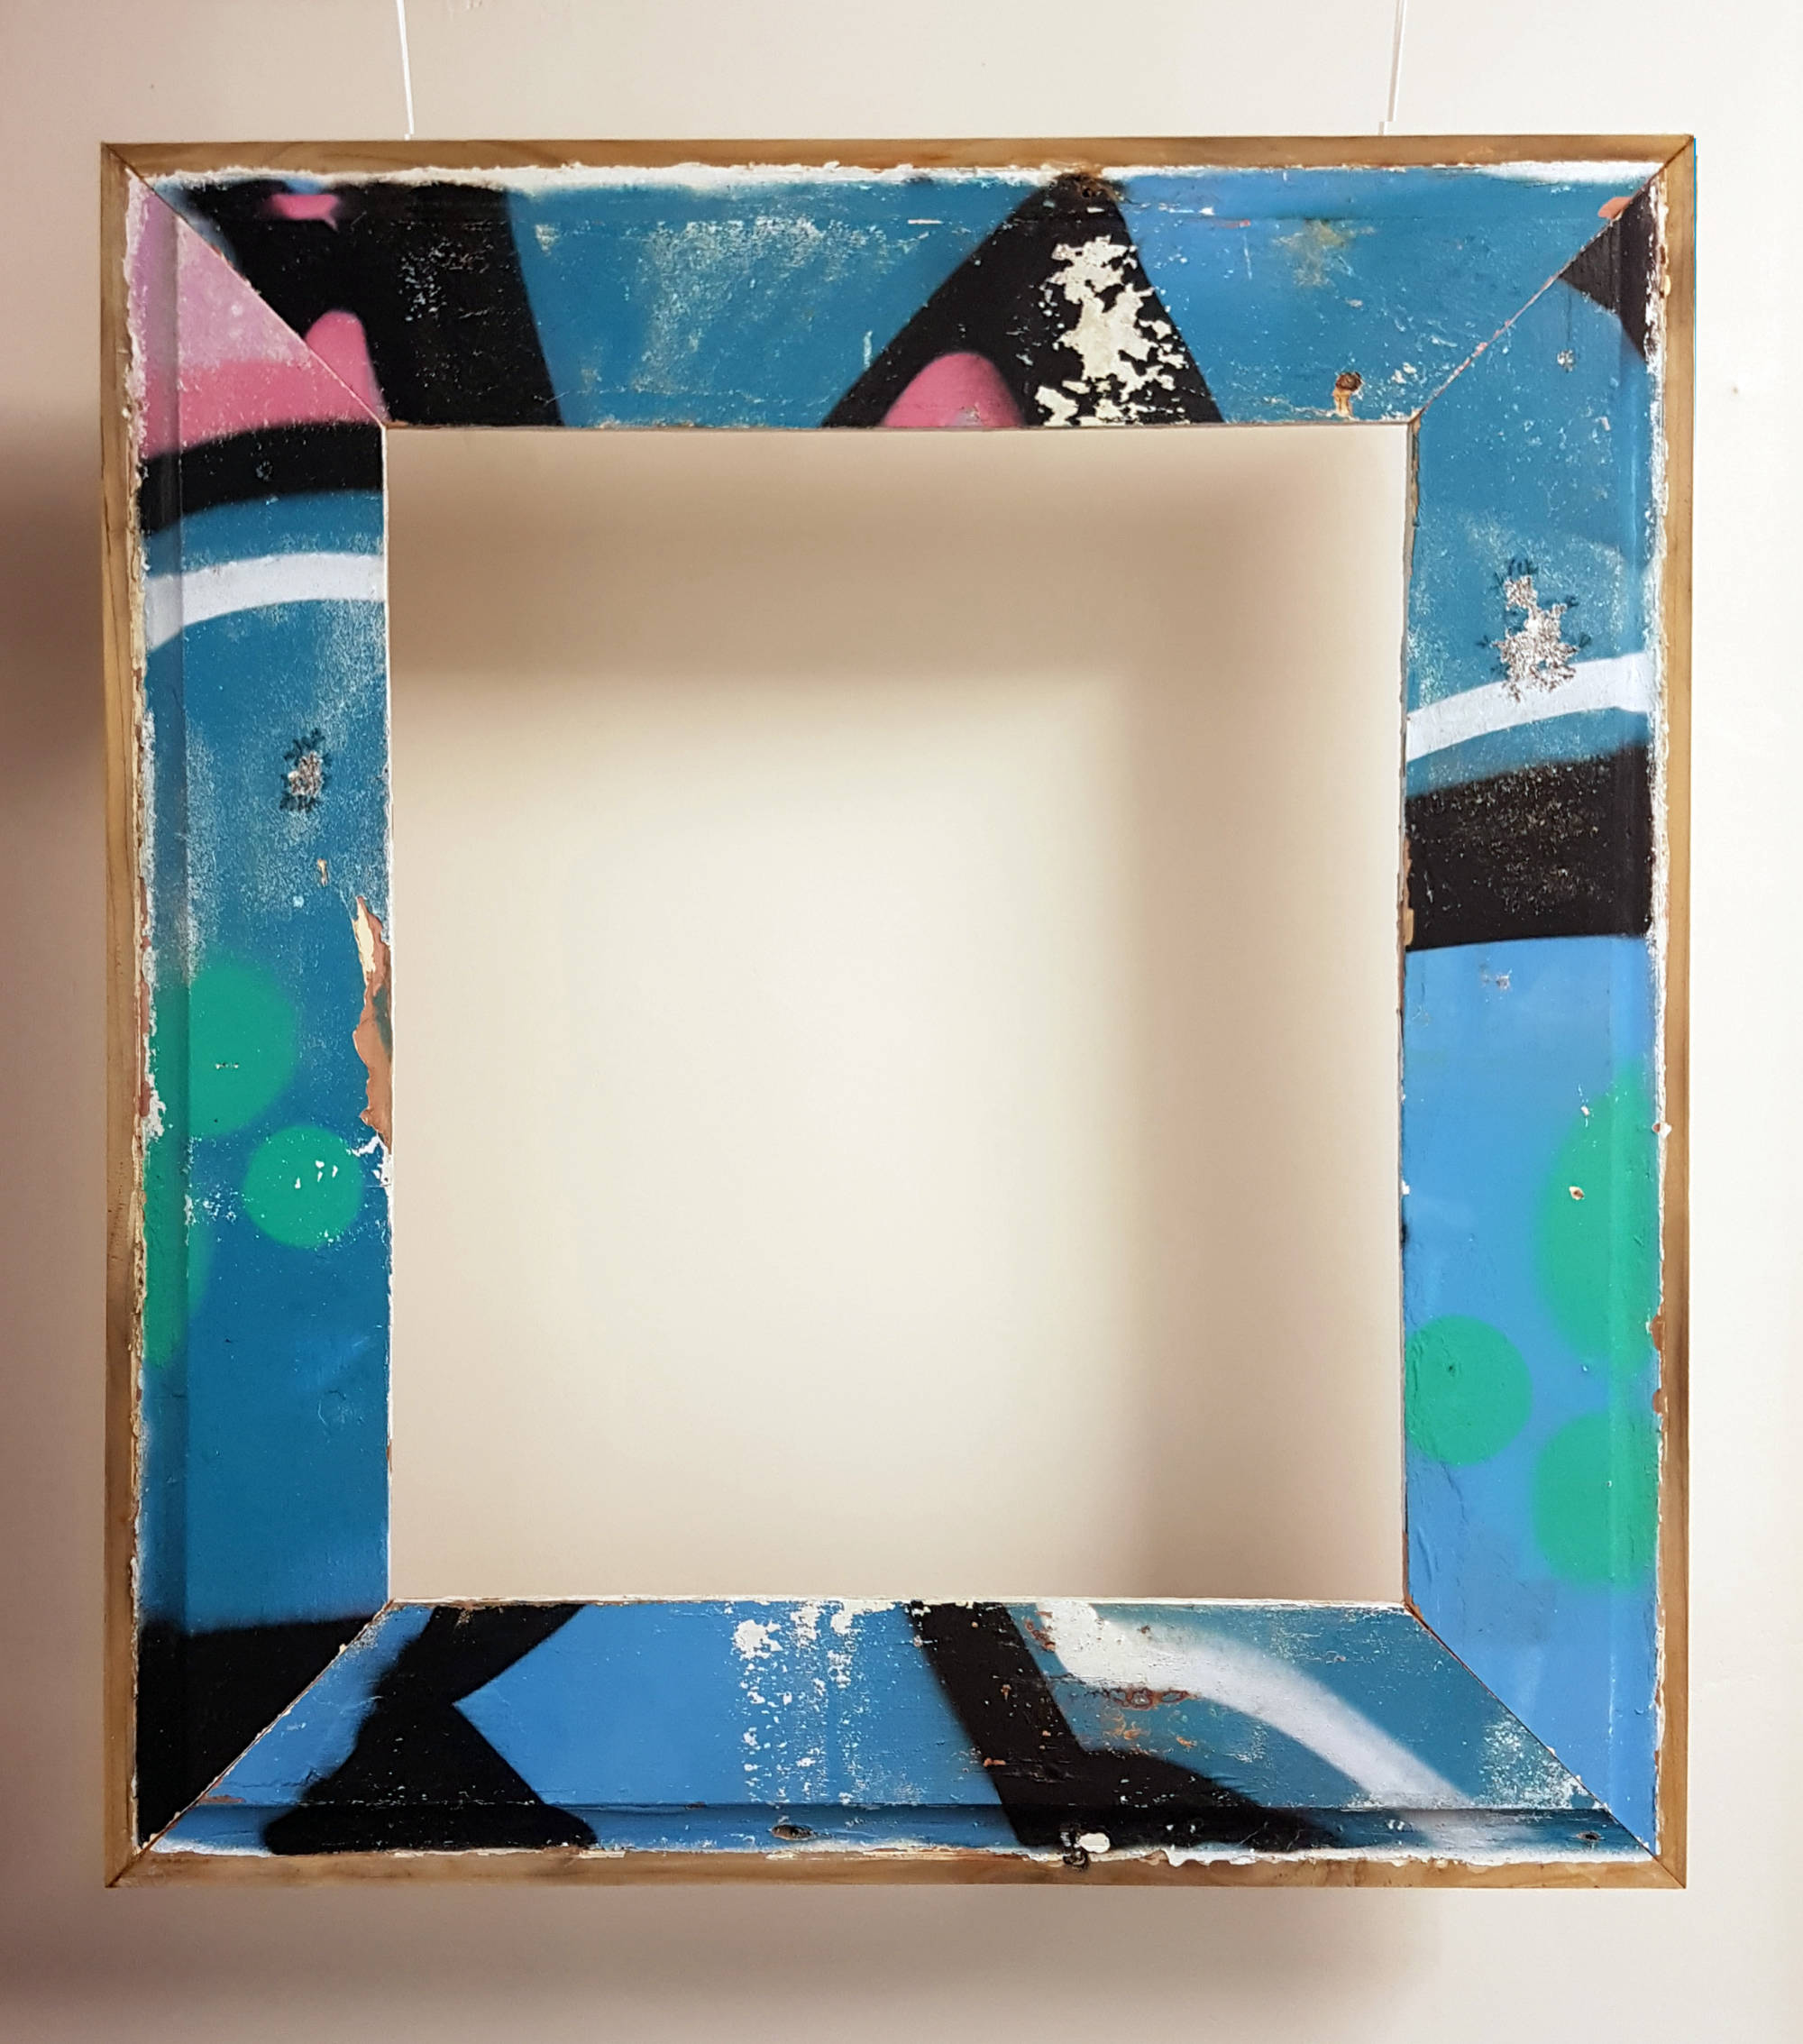 Medium upcycled graffiti weatherboard frame (can be fitted with mirror/artwork/pinboard).  Dimensions: 800mm x 850mm. Price: $300 with mirror/$250 frame only